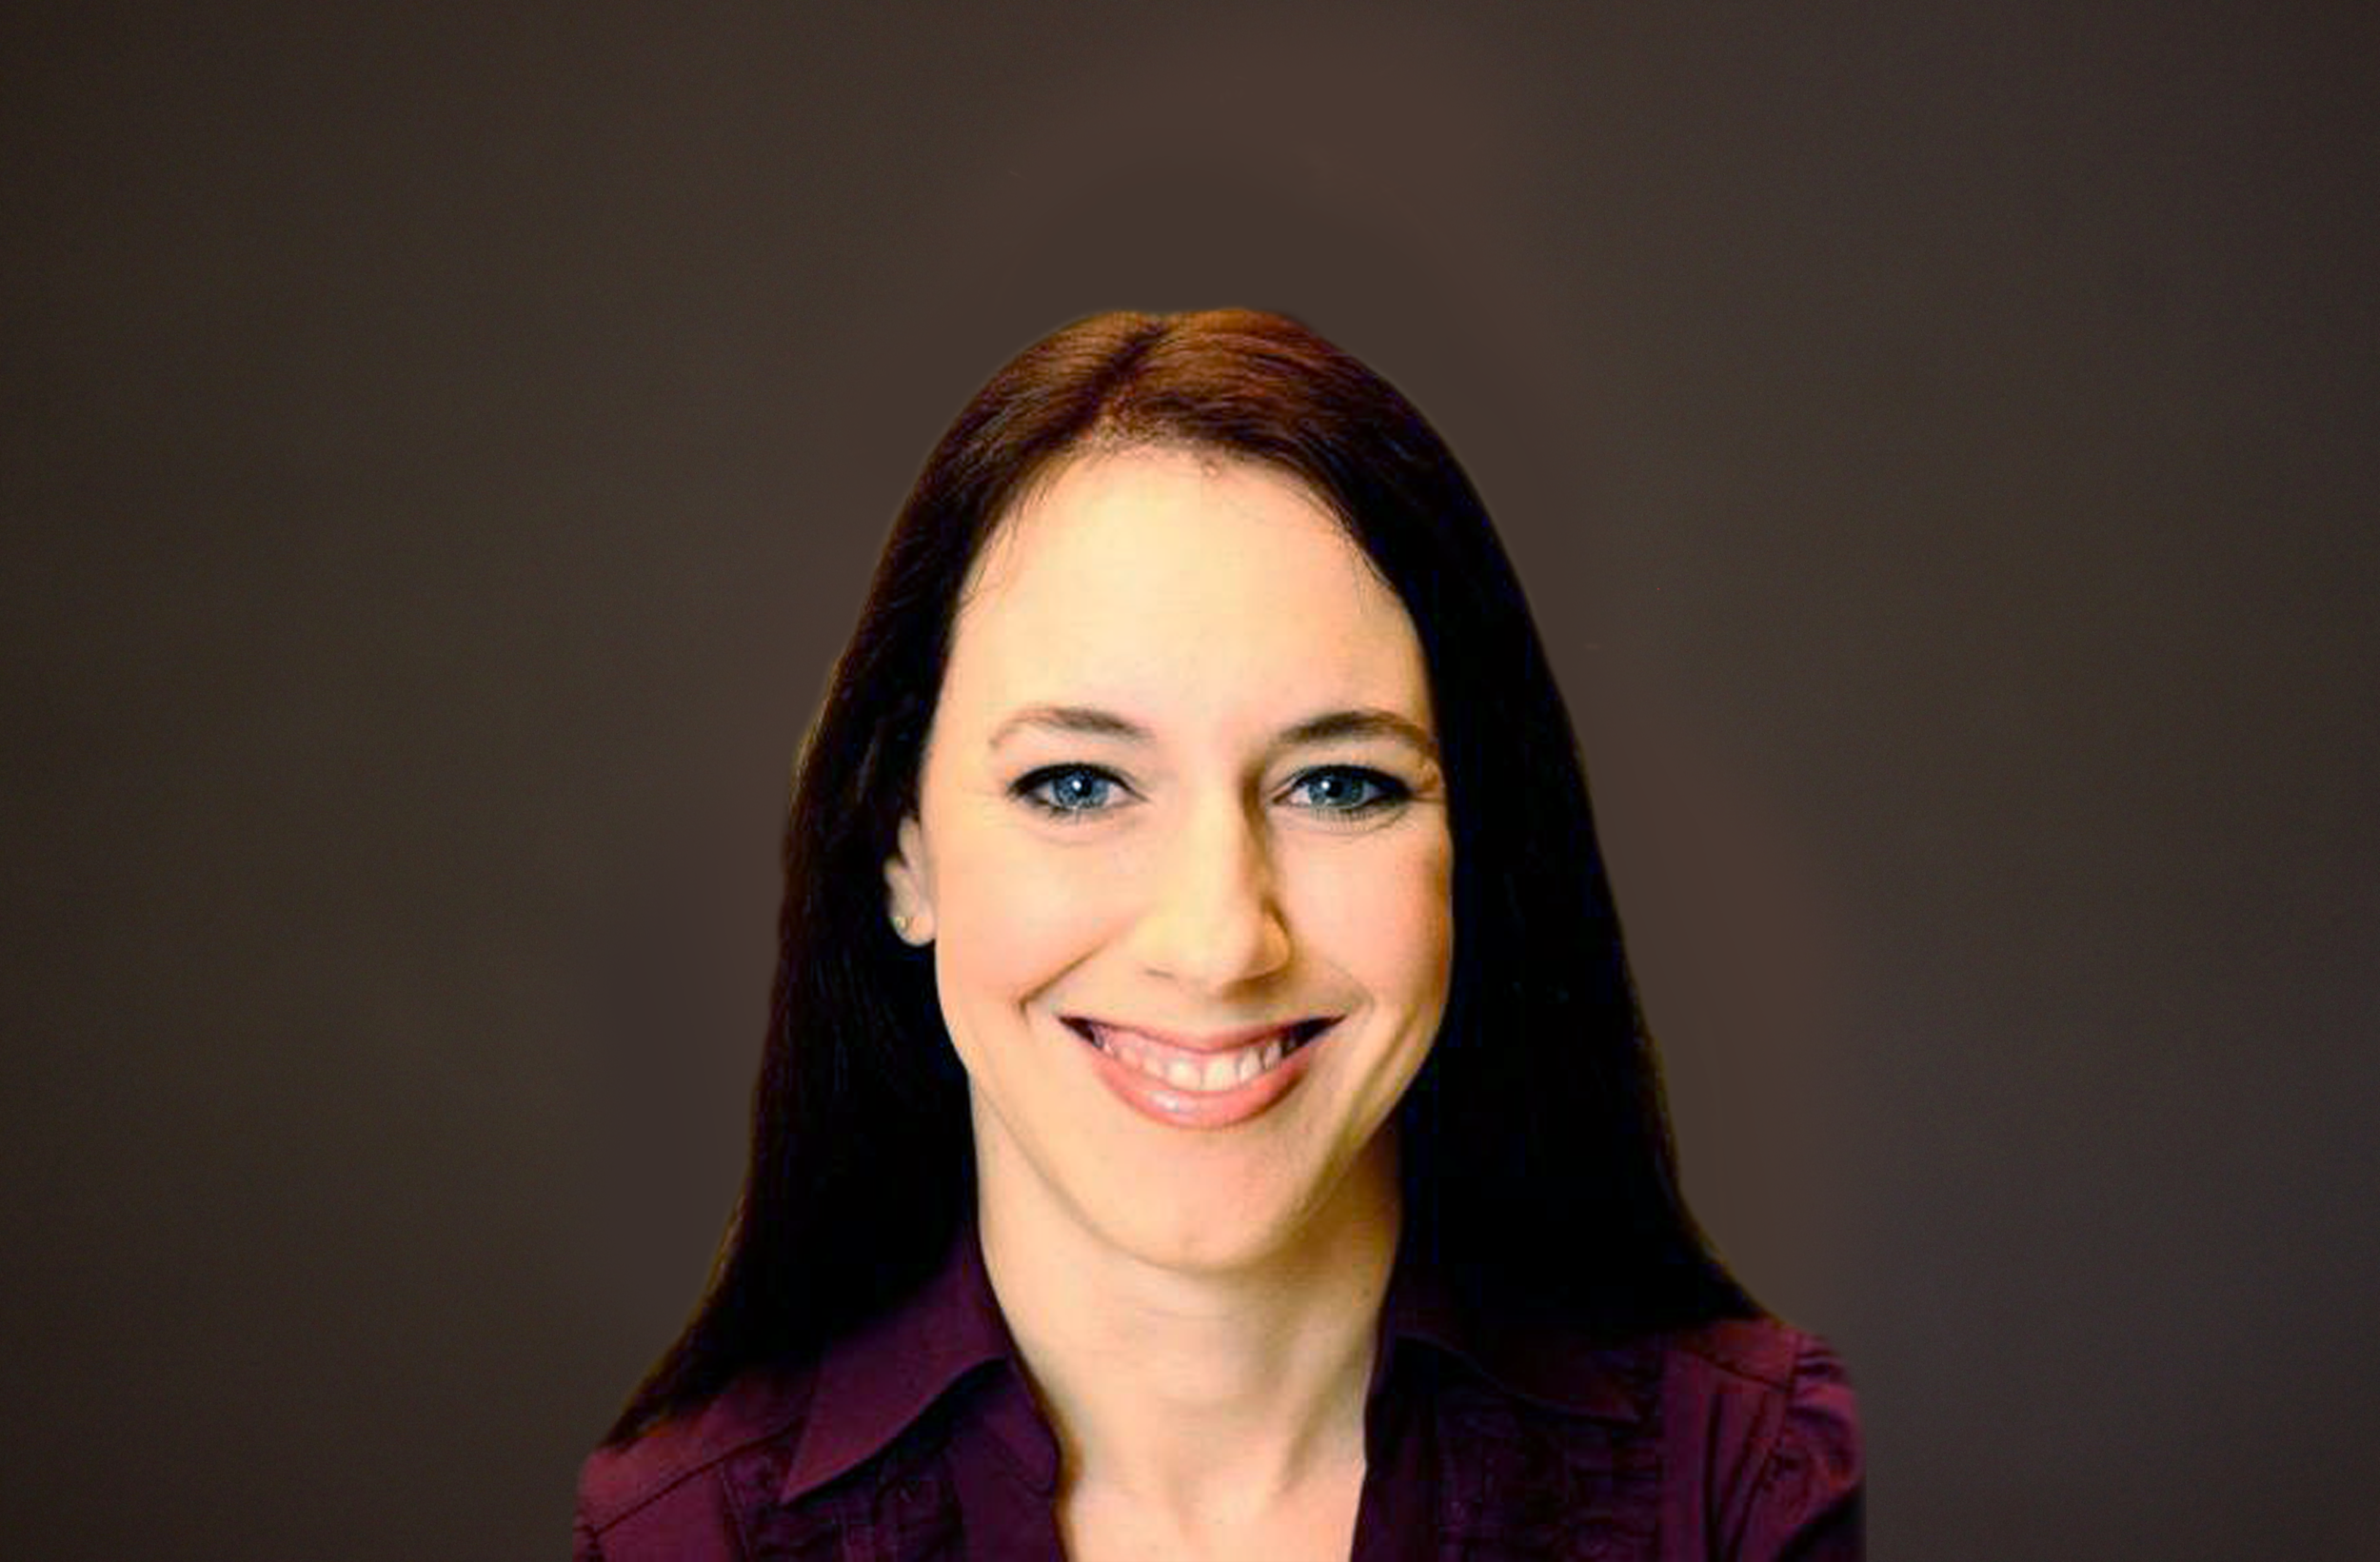 ANNA DEMERS - Anna is an actor, creator and educator who has created solo work and teaches at Middlesex Community College and Kean University. She has completed her Level 3 University and Level 1 Professional Certifications.